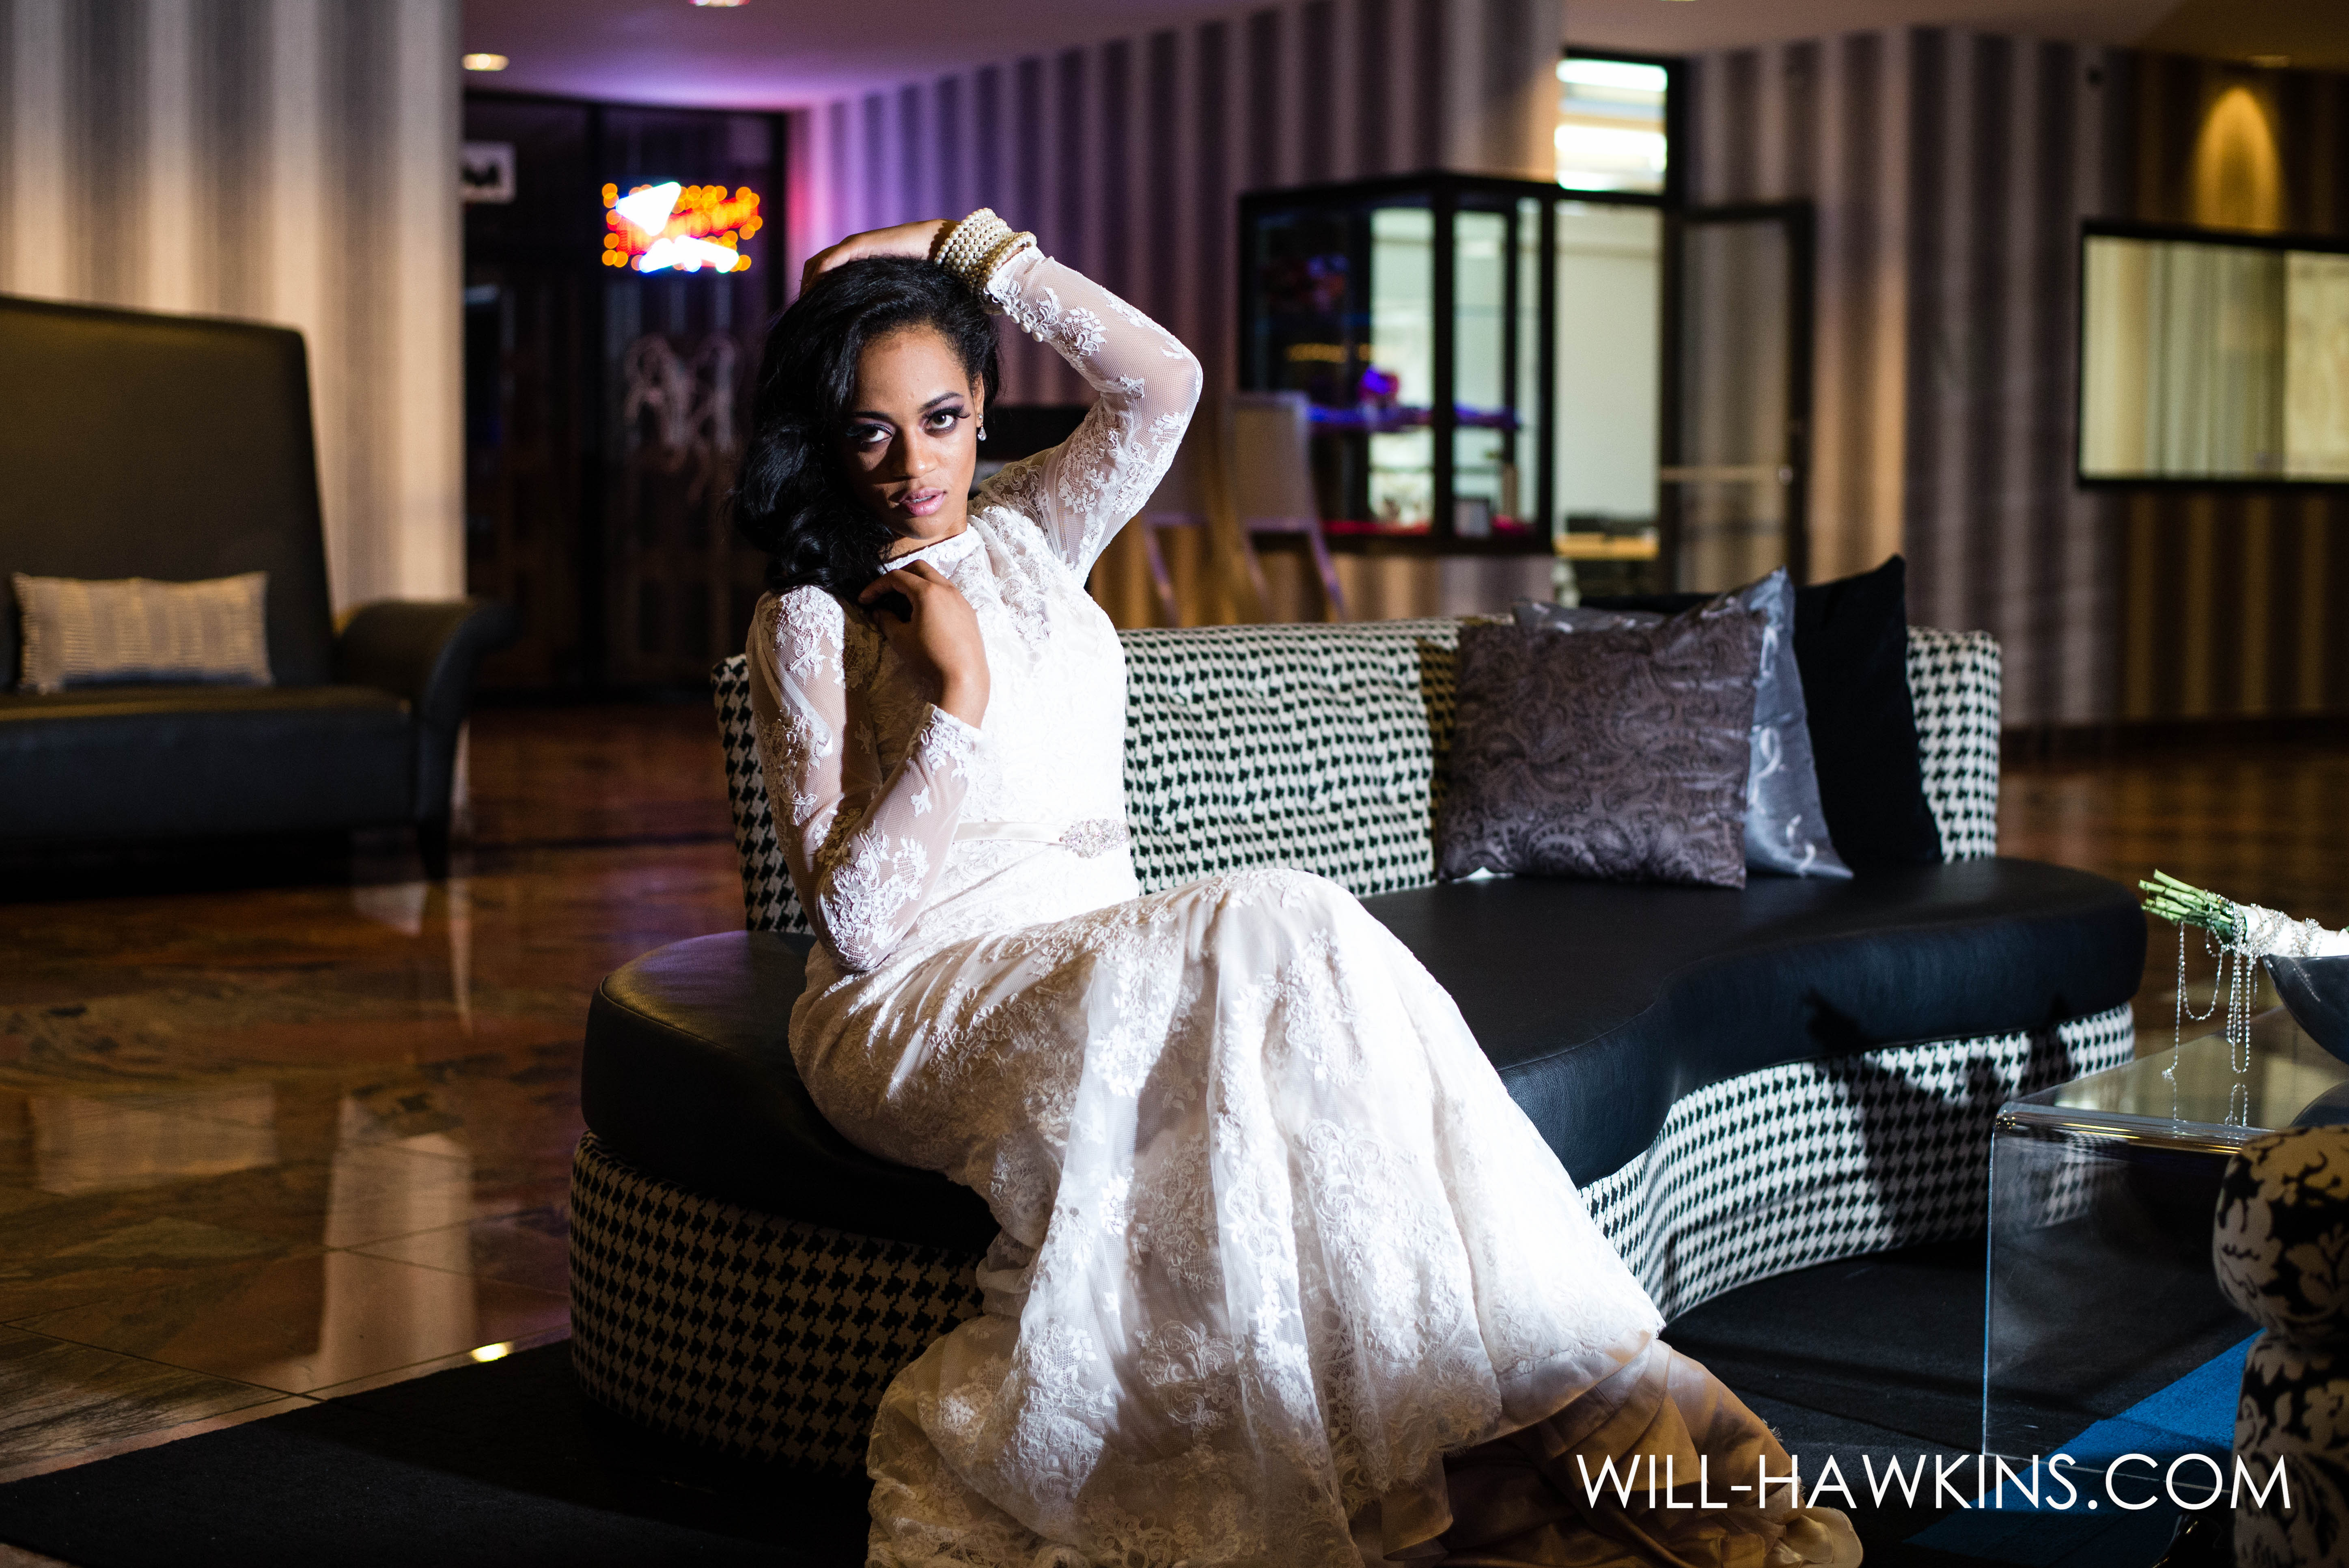 Weddings wyndam garden hotel downtown norfolk va - Wyndham garden norfolk downtown norfolk va ...